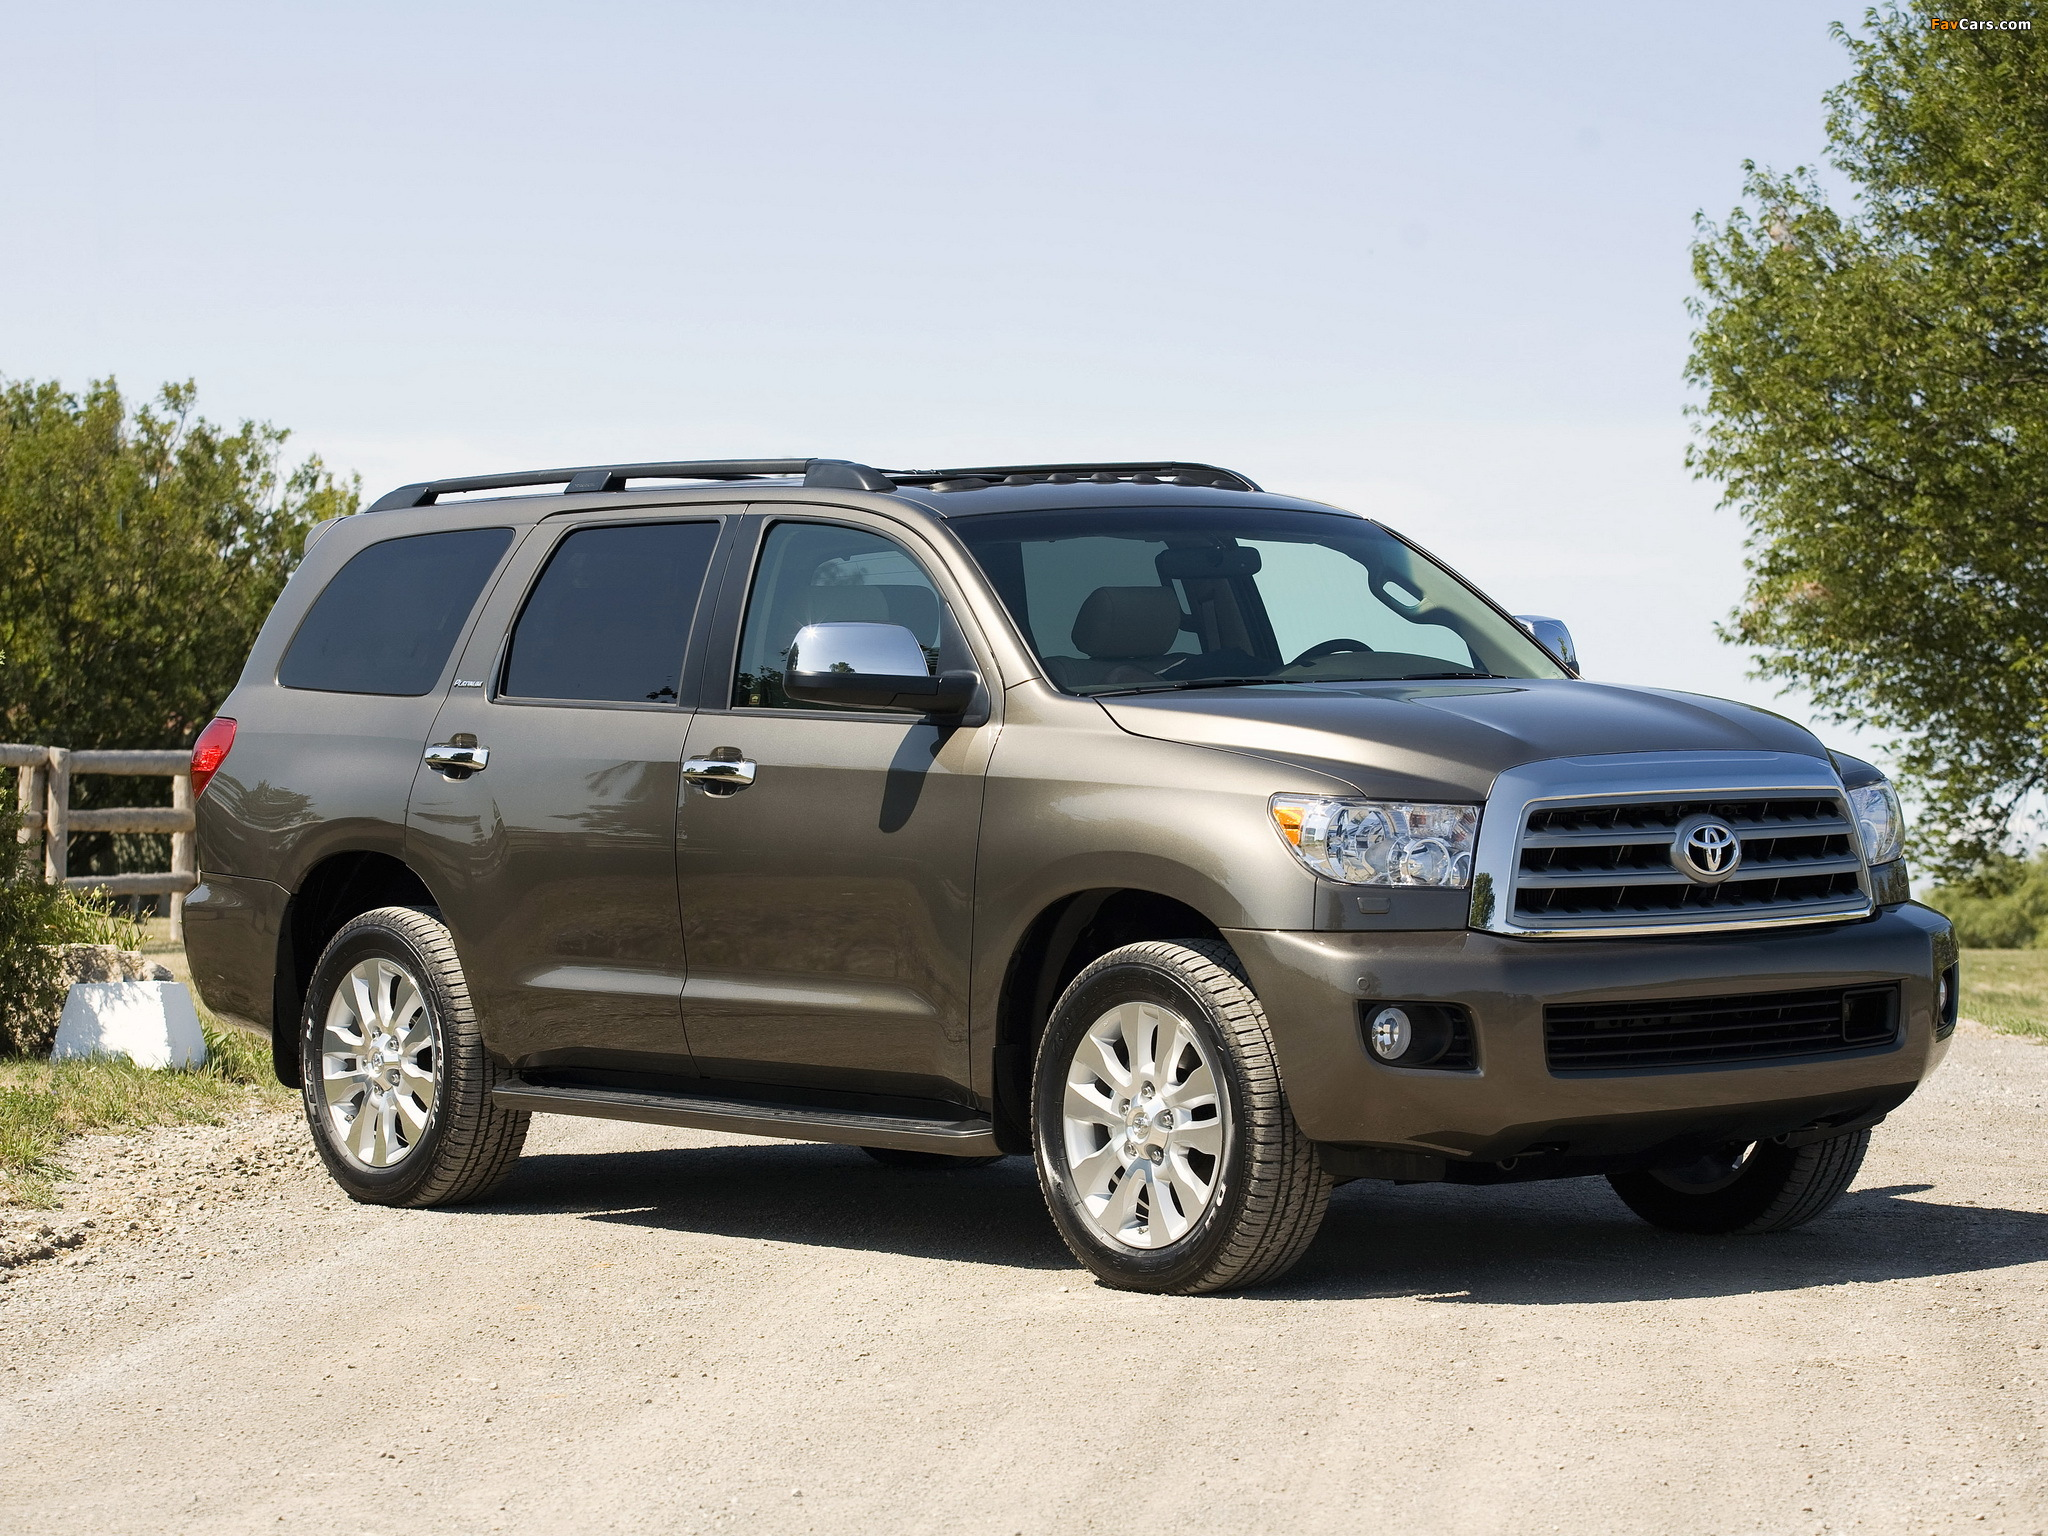 Toyota Sequoia Limited 2007 pictures (2048 x 1536)